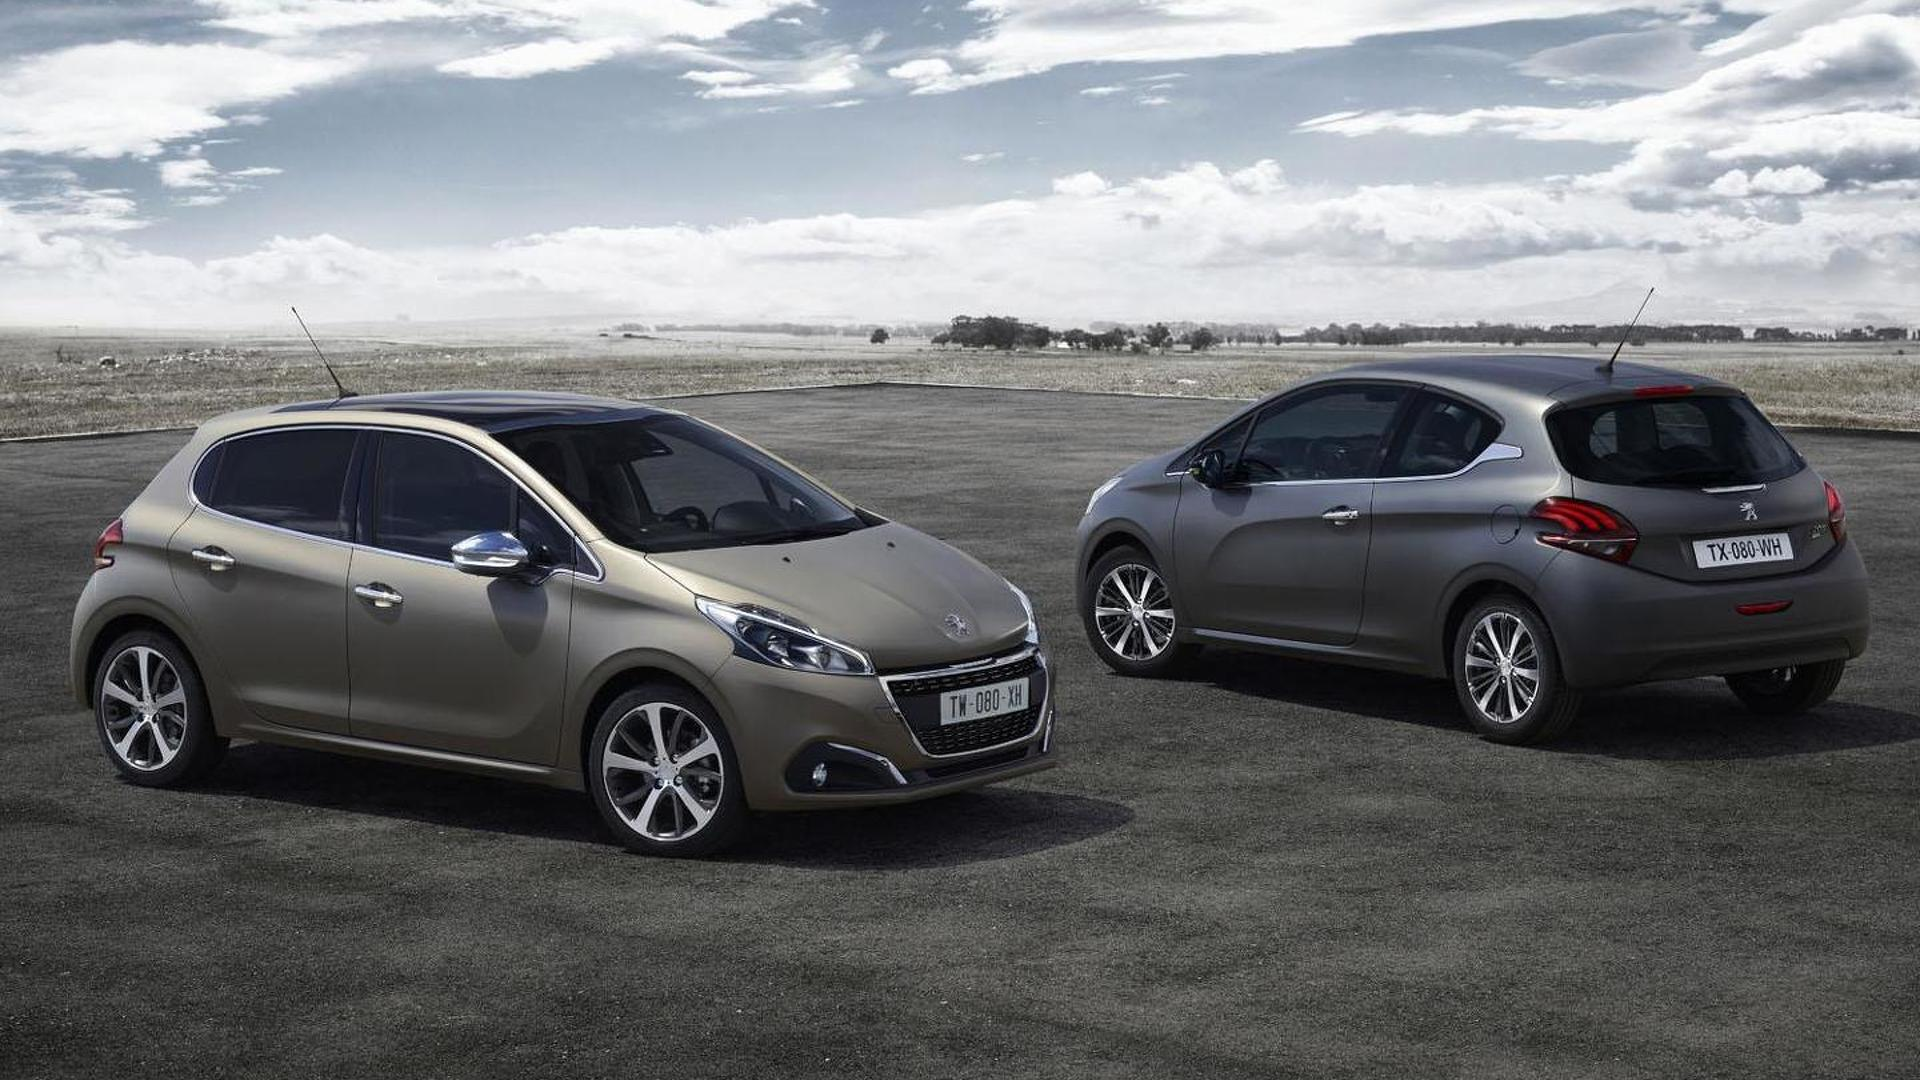 Peugeot 208 to offer unique a textured paint finish